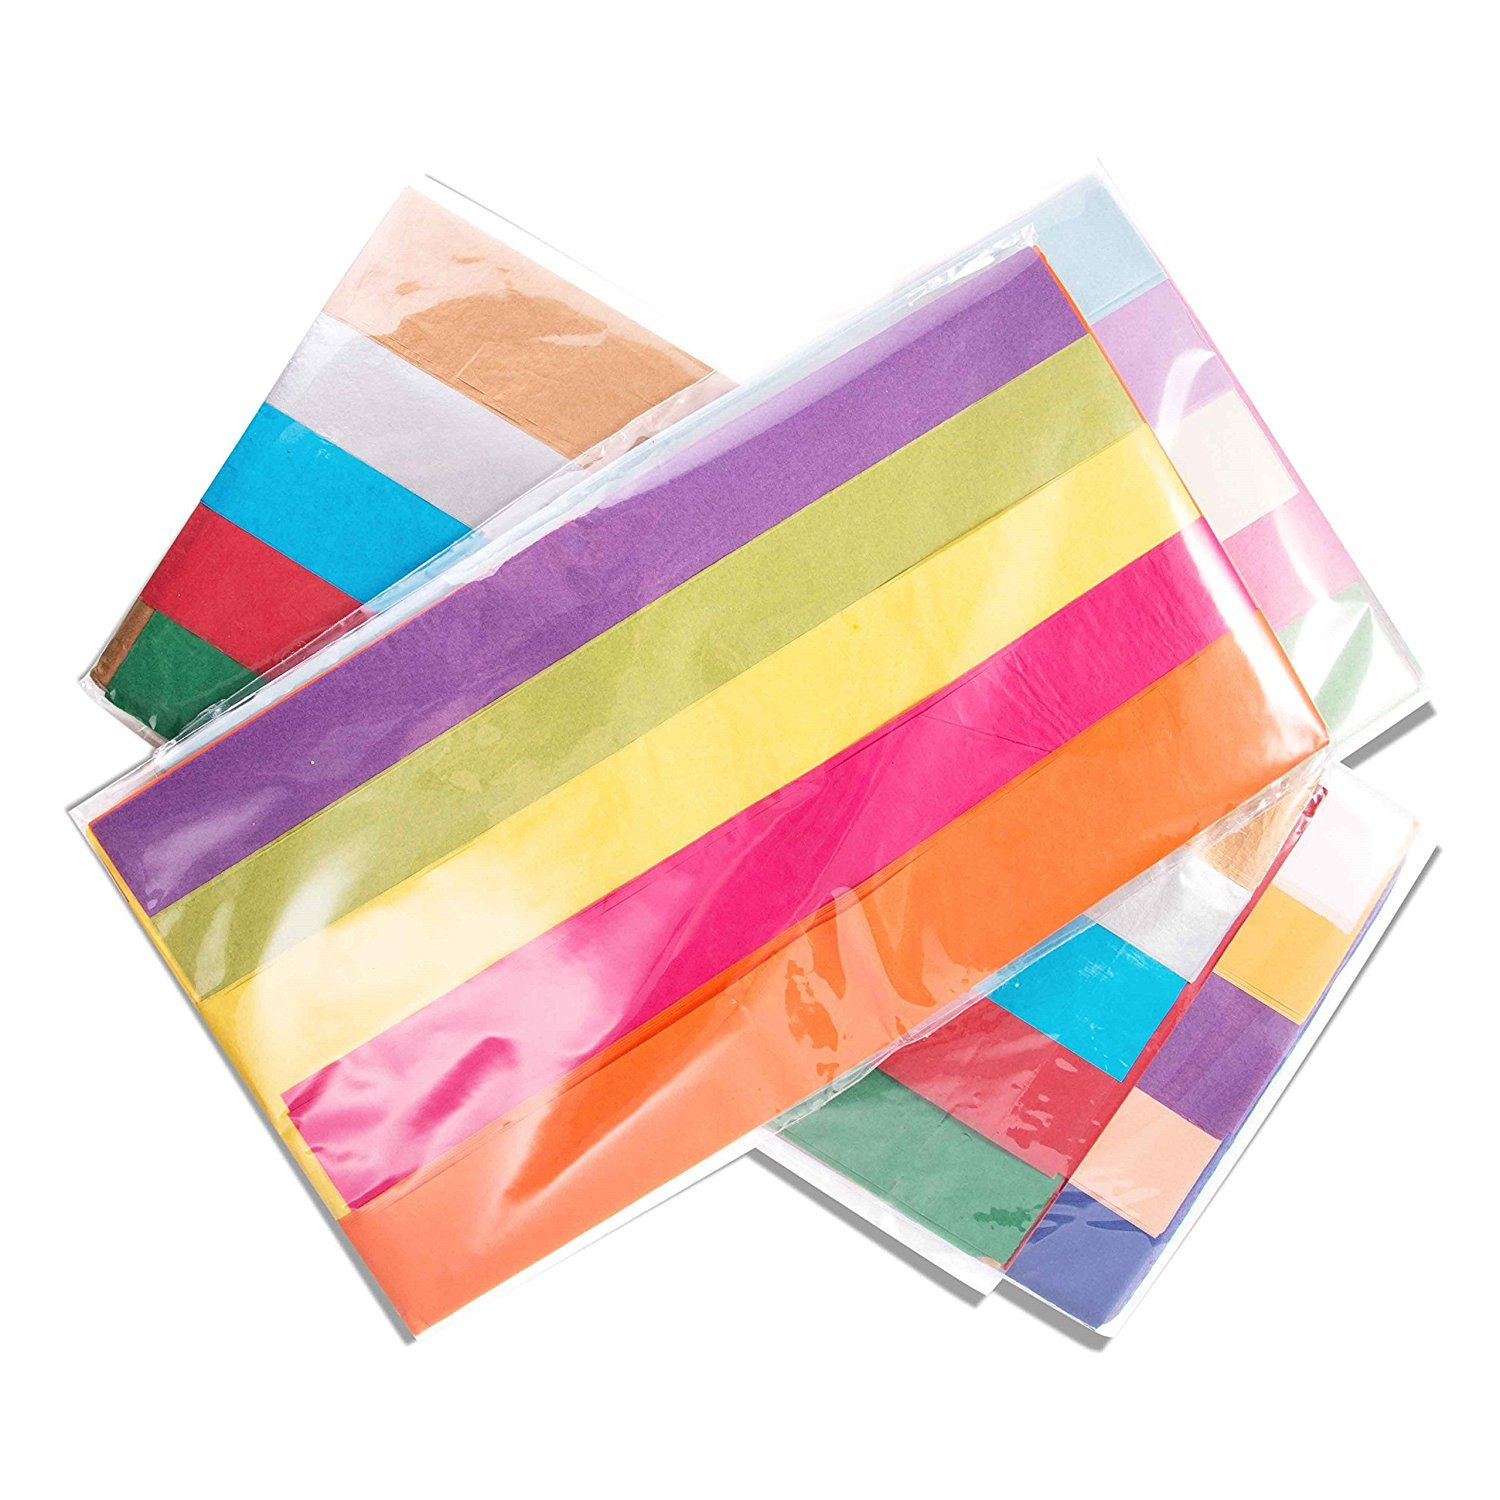 Amazon 110 count wrapping multi colored tissue paper bulk for amazon 110 count wrapping multi colored tissue paper bulk for craft gift wrap includes red orange yellow aqua purple turquoise rose gold teal silver jeuxipadfo Gallery